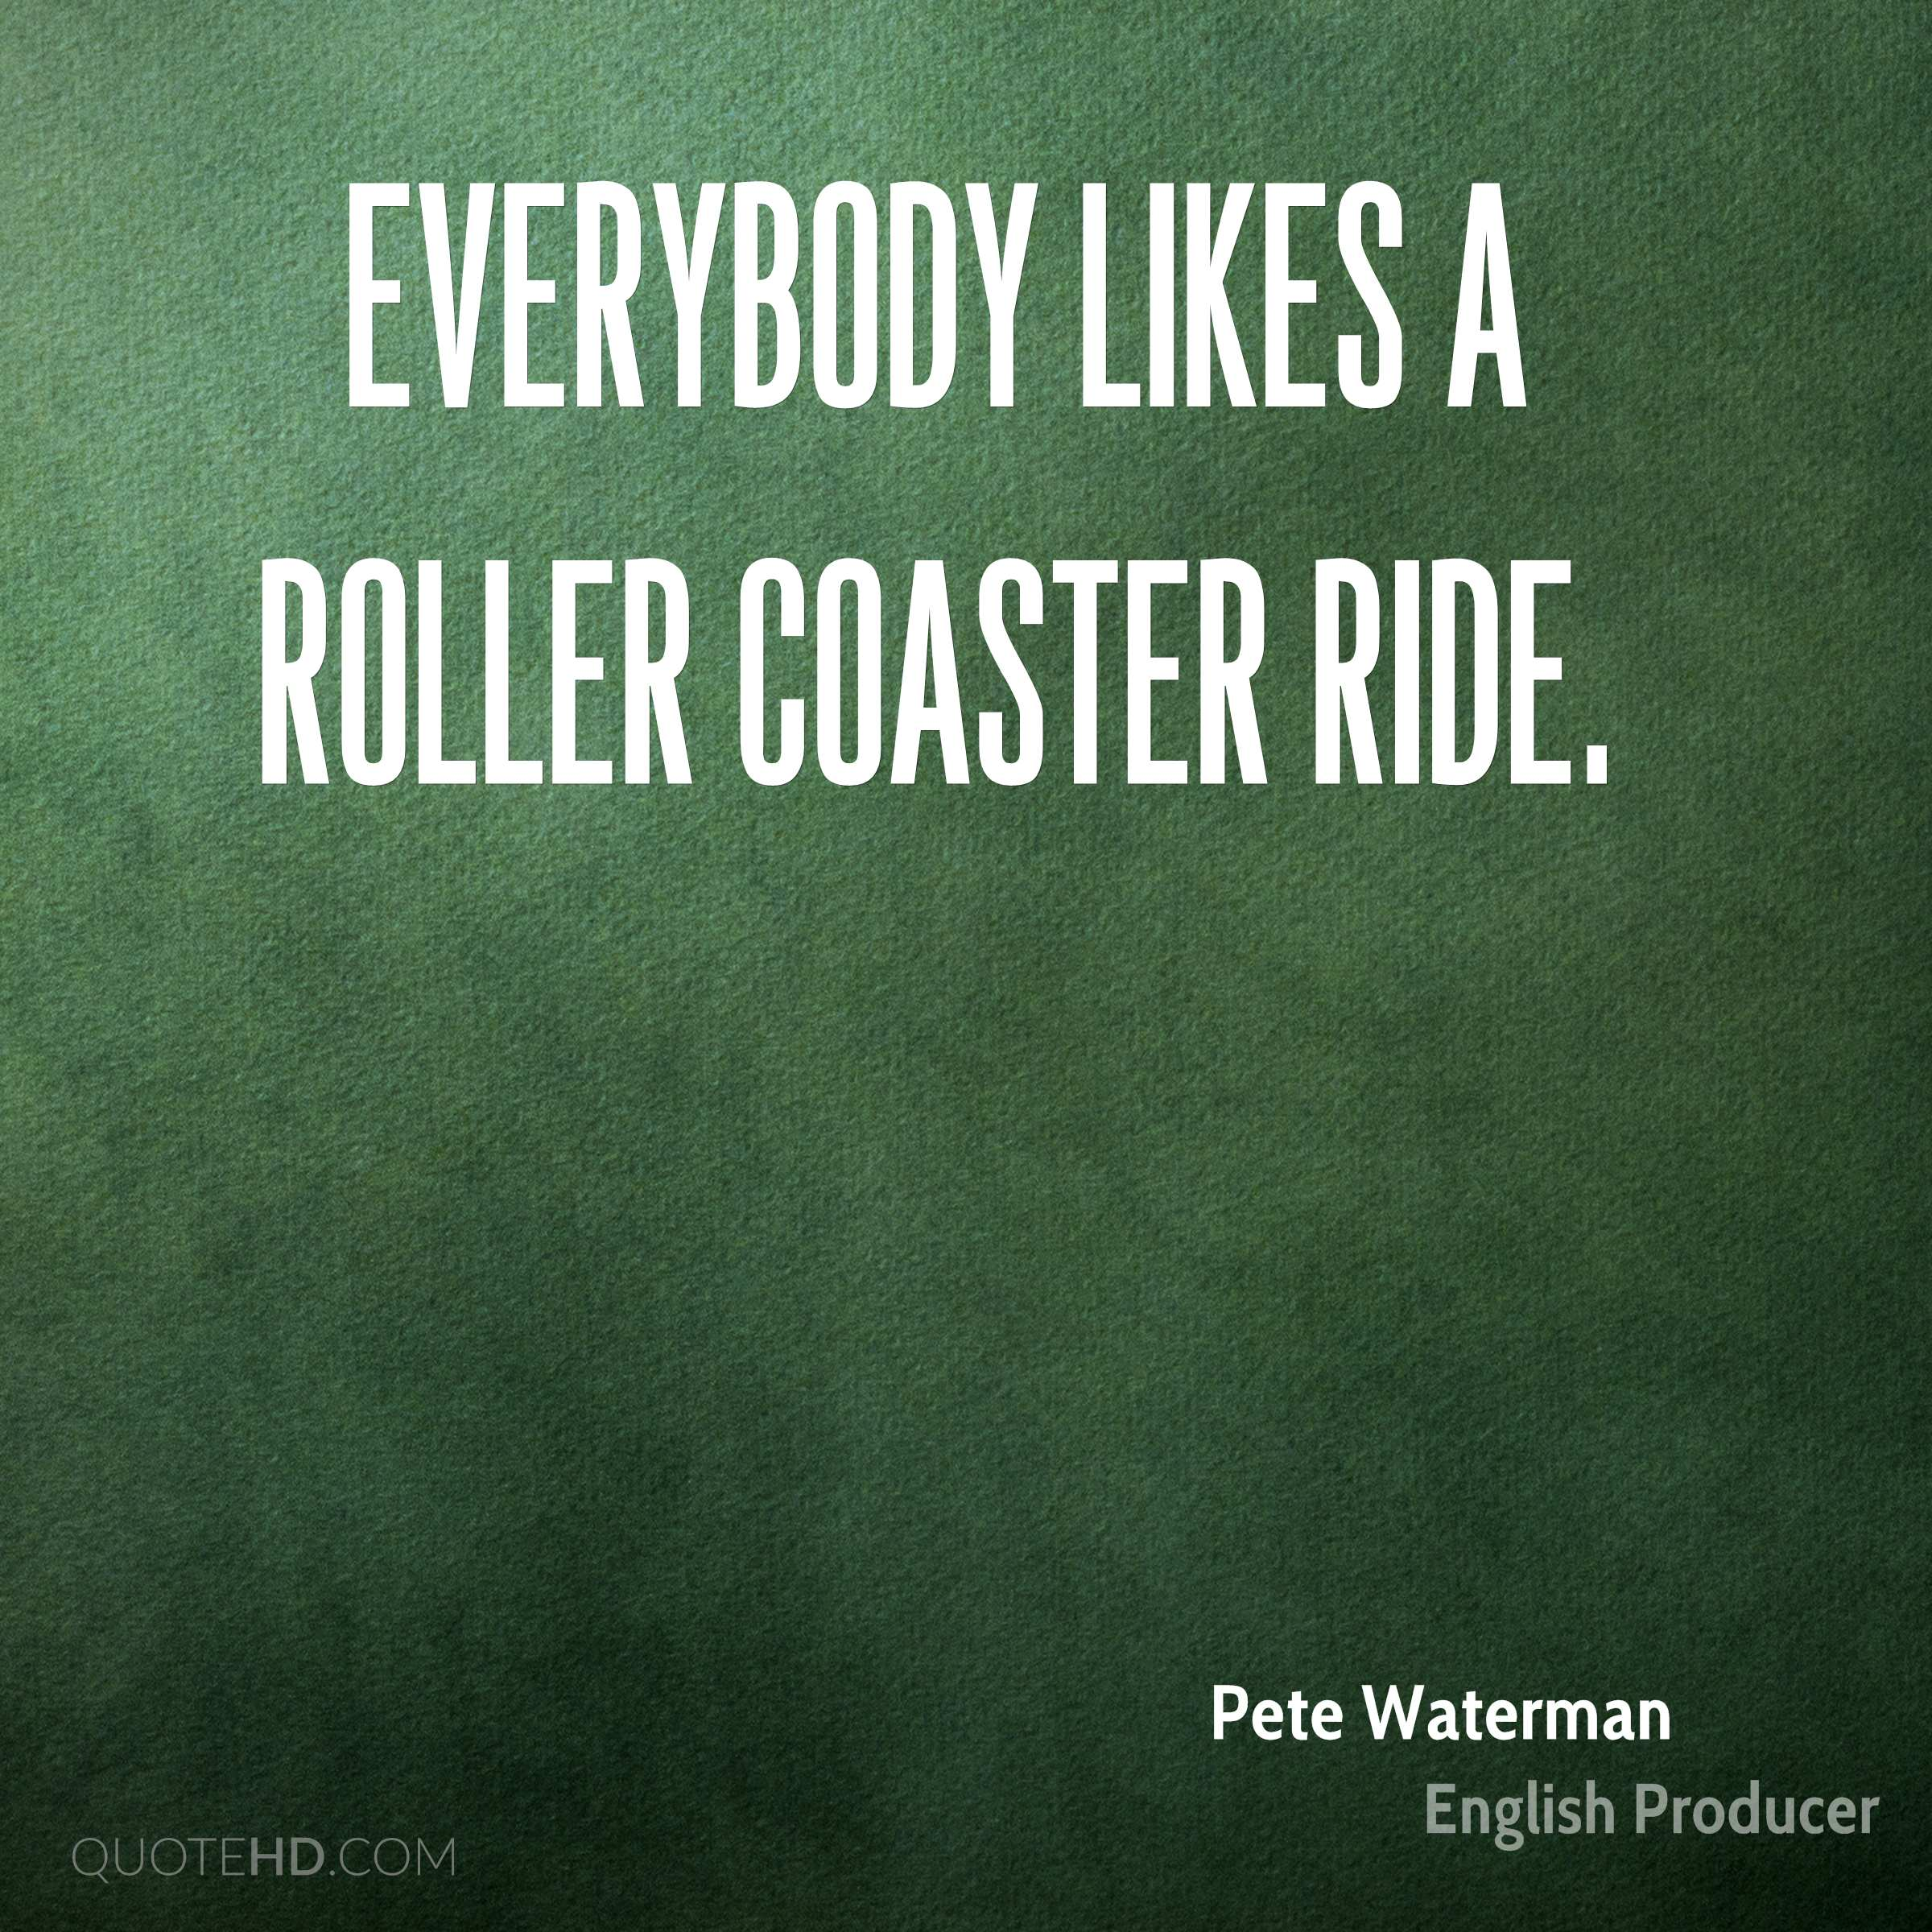 Everybody likes a roller coaster ride.